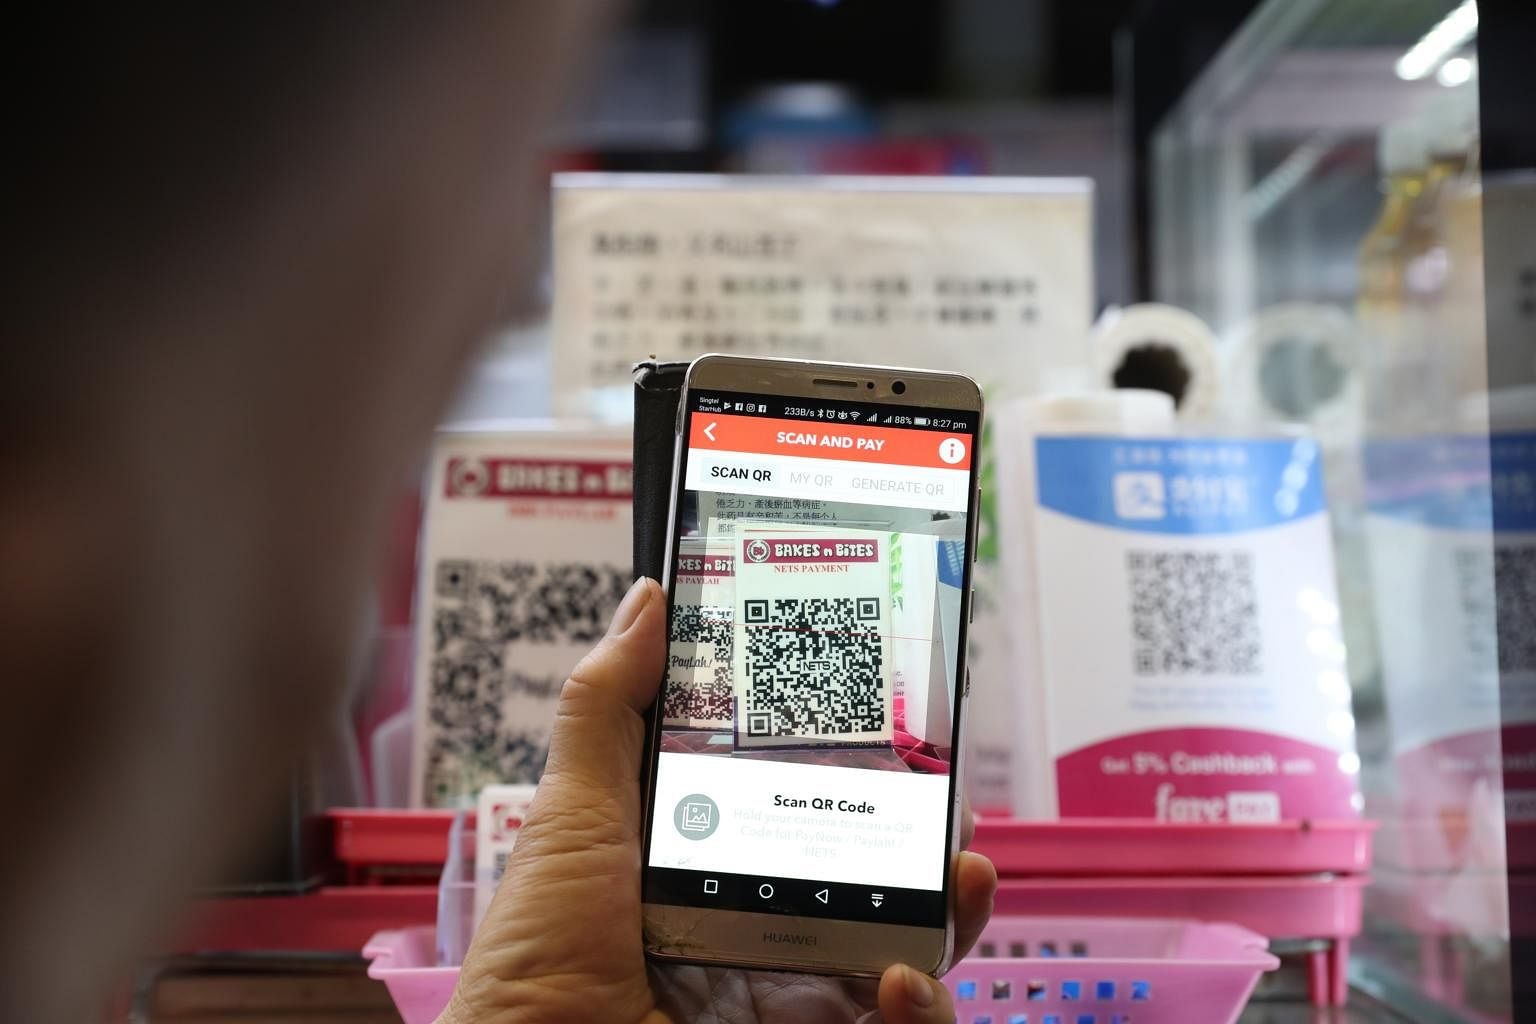 Connectivity issues with Nets QR code affect some e-payment